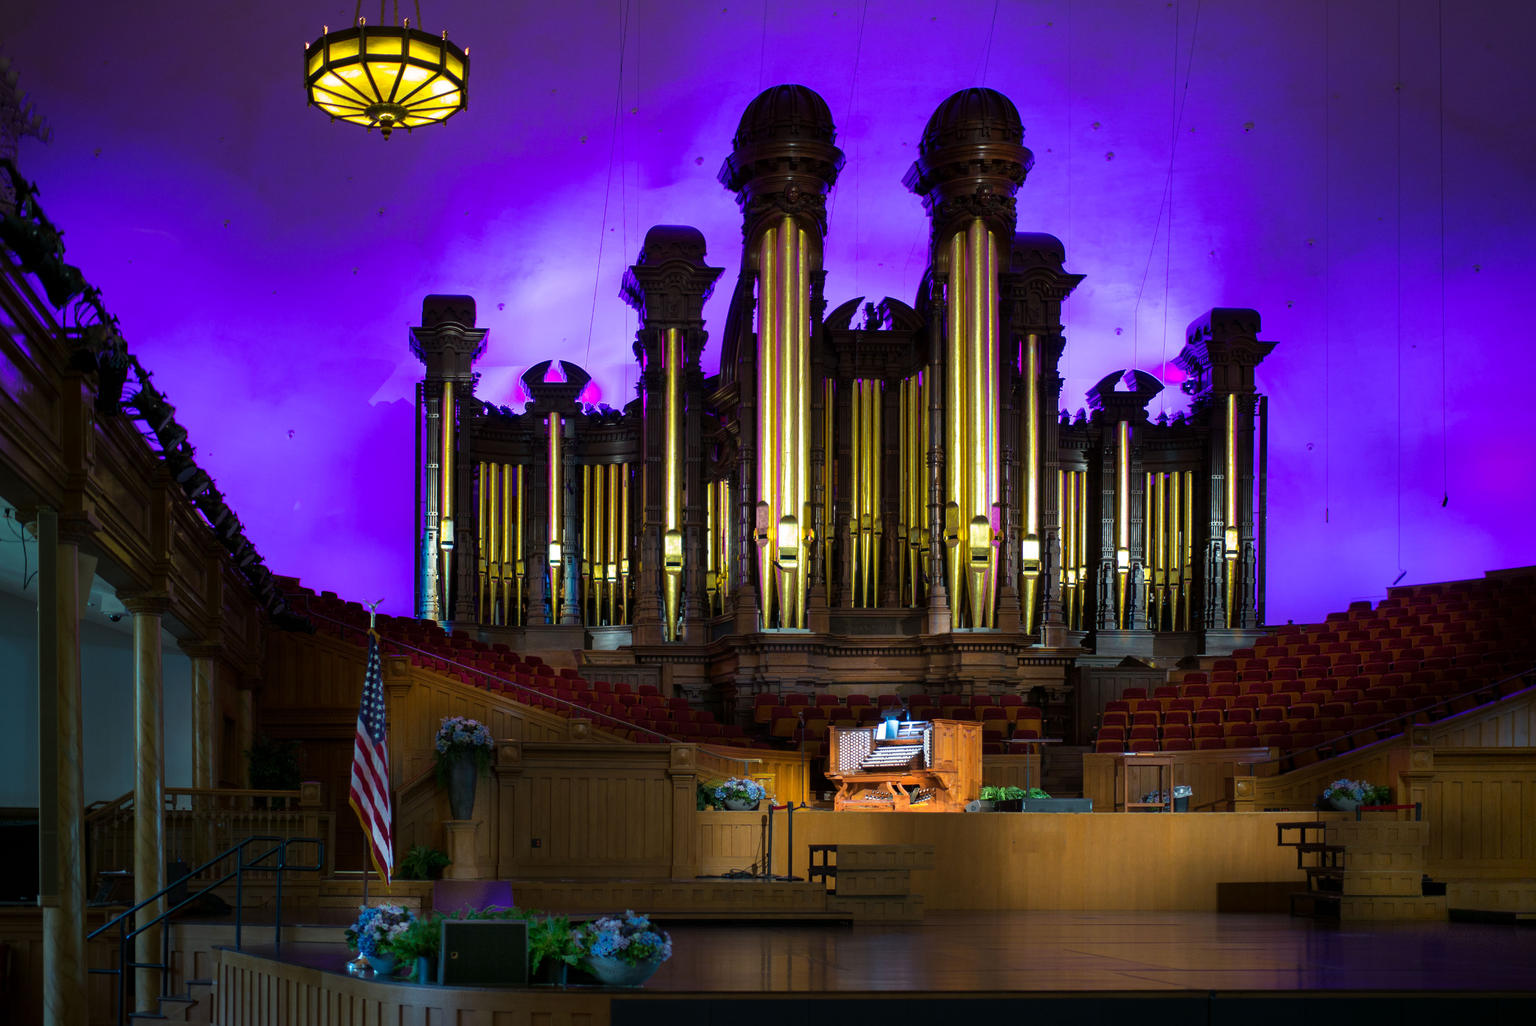 Ultimate Salt Lake City Tour with Tabernacle Organ Performance